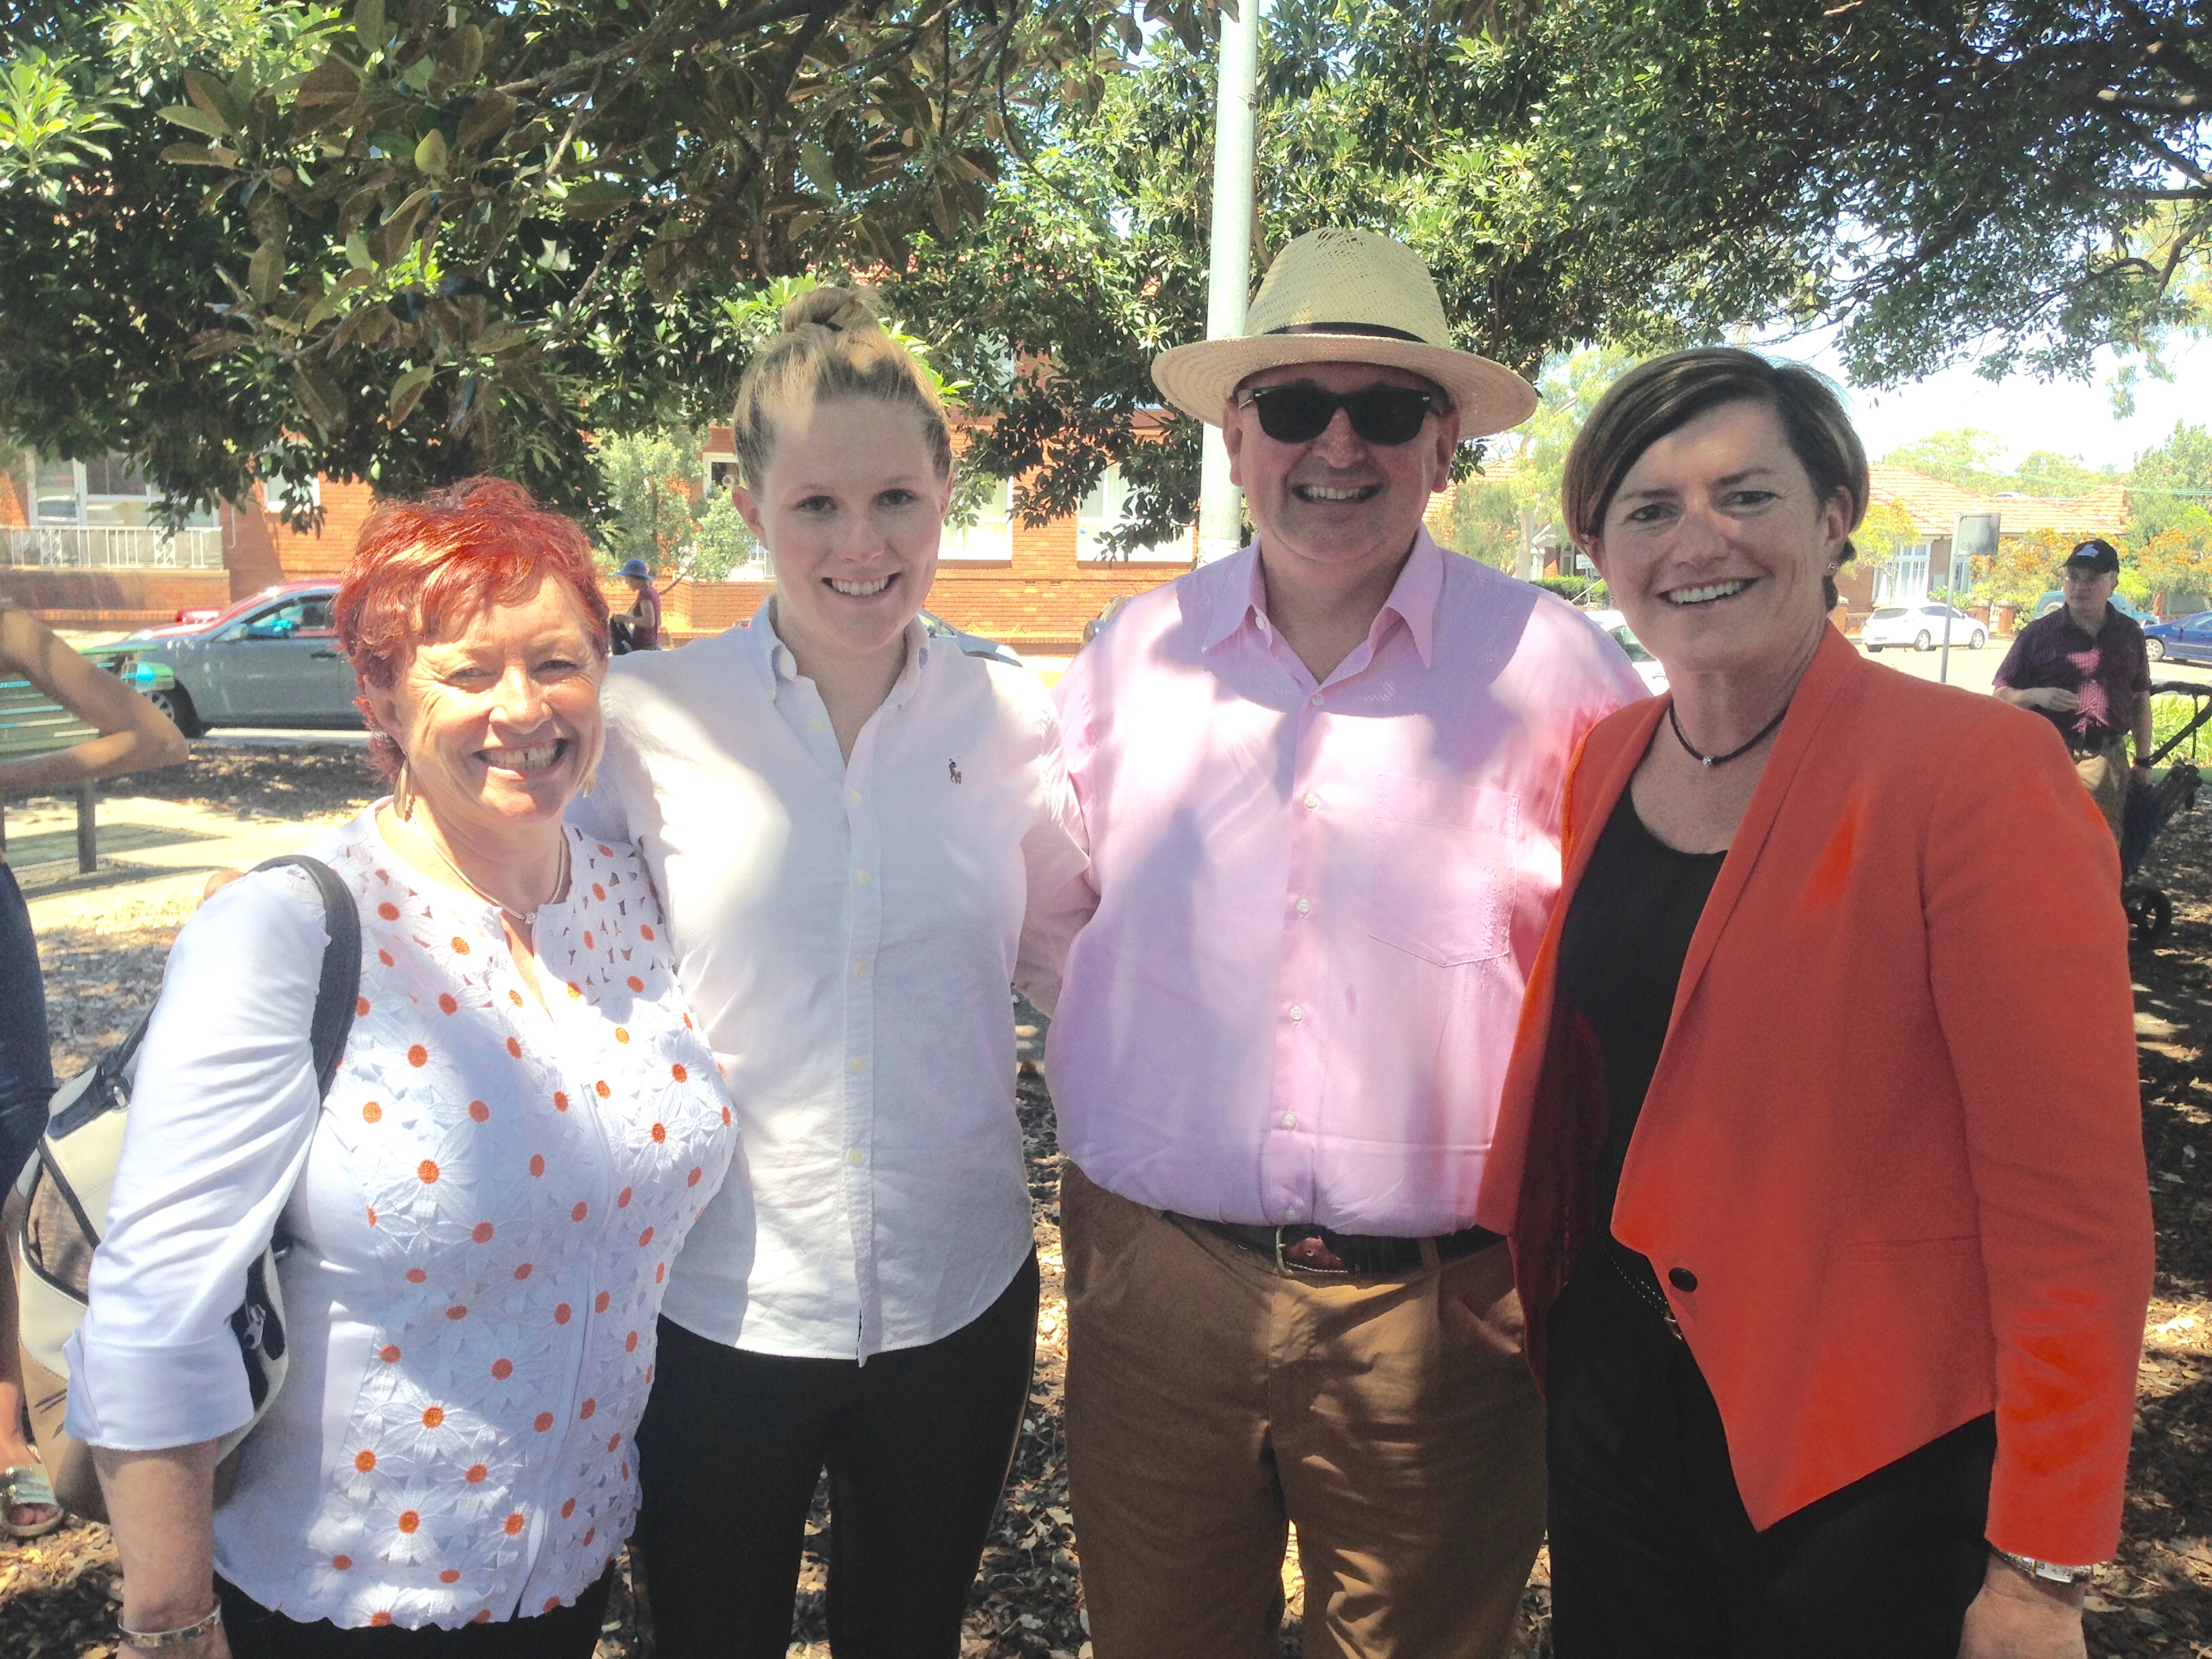 At the launch Rachael Wheldall's campaign for the state seat of Newtown (L-R: Virginia Edwards, Rachael Wheldall, Don Harwin, Christine Forster)